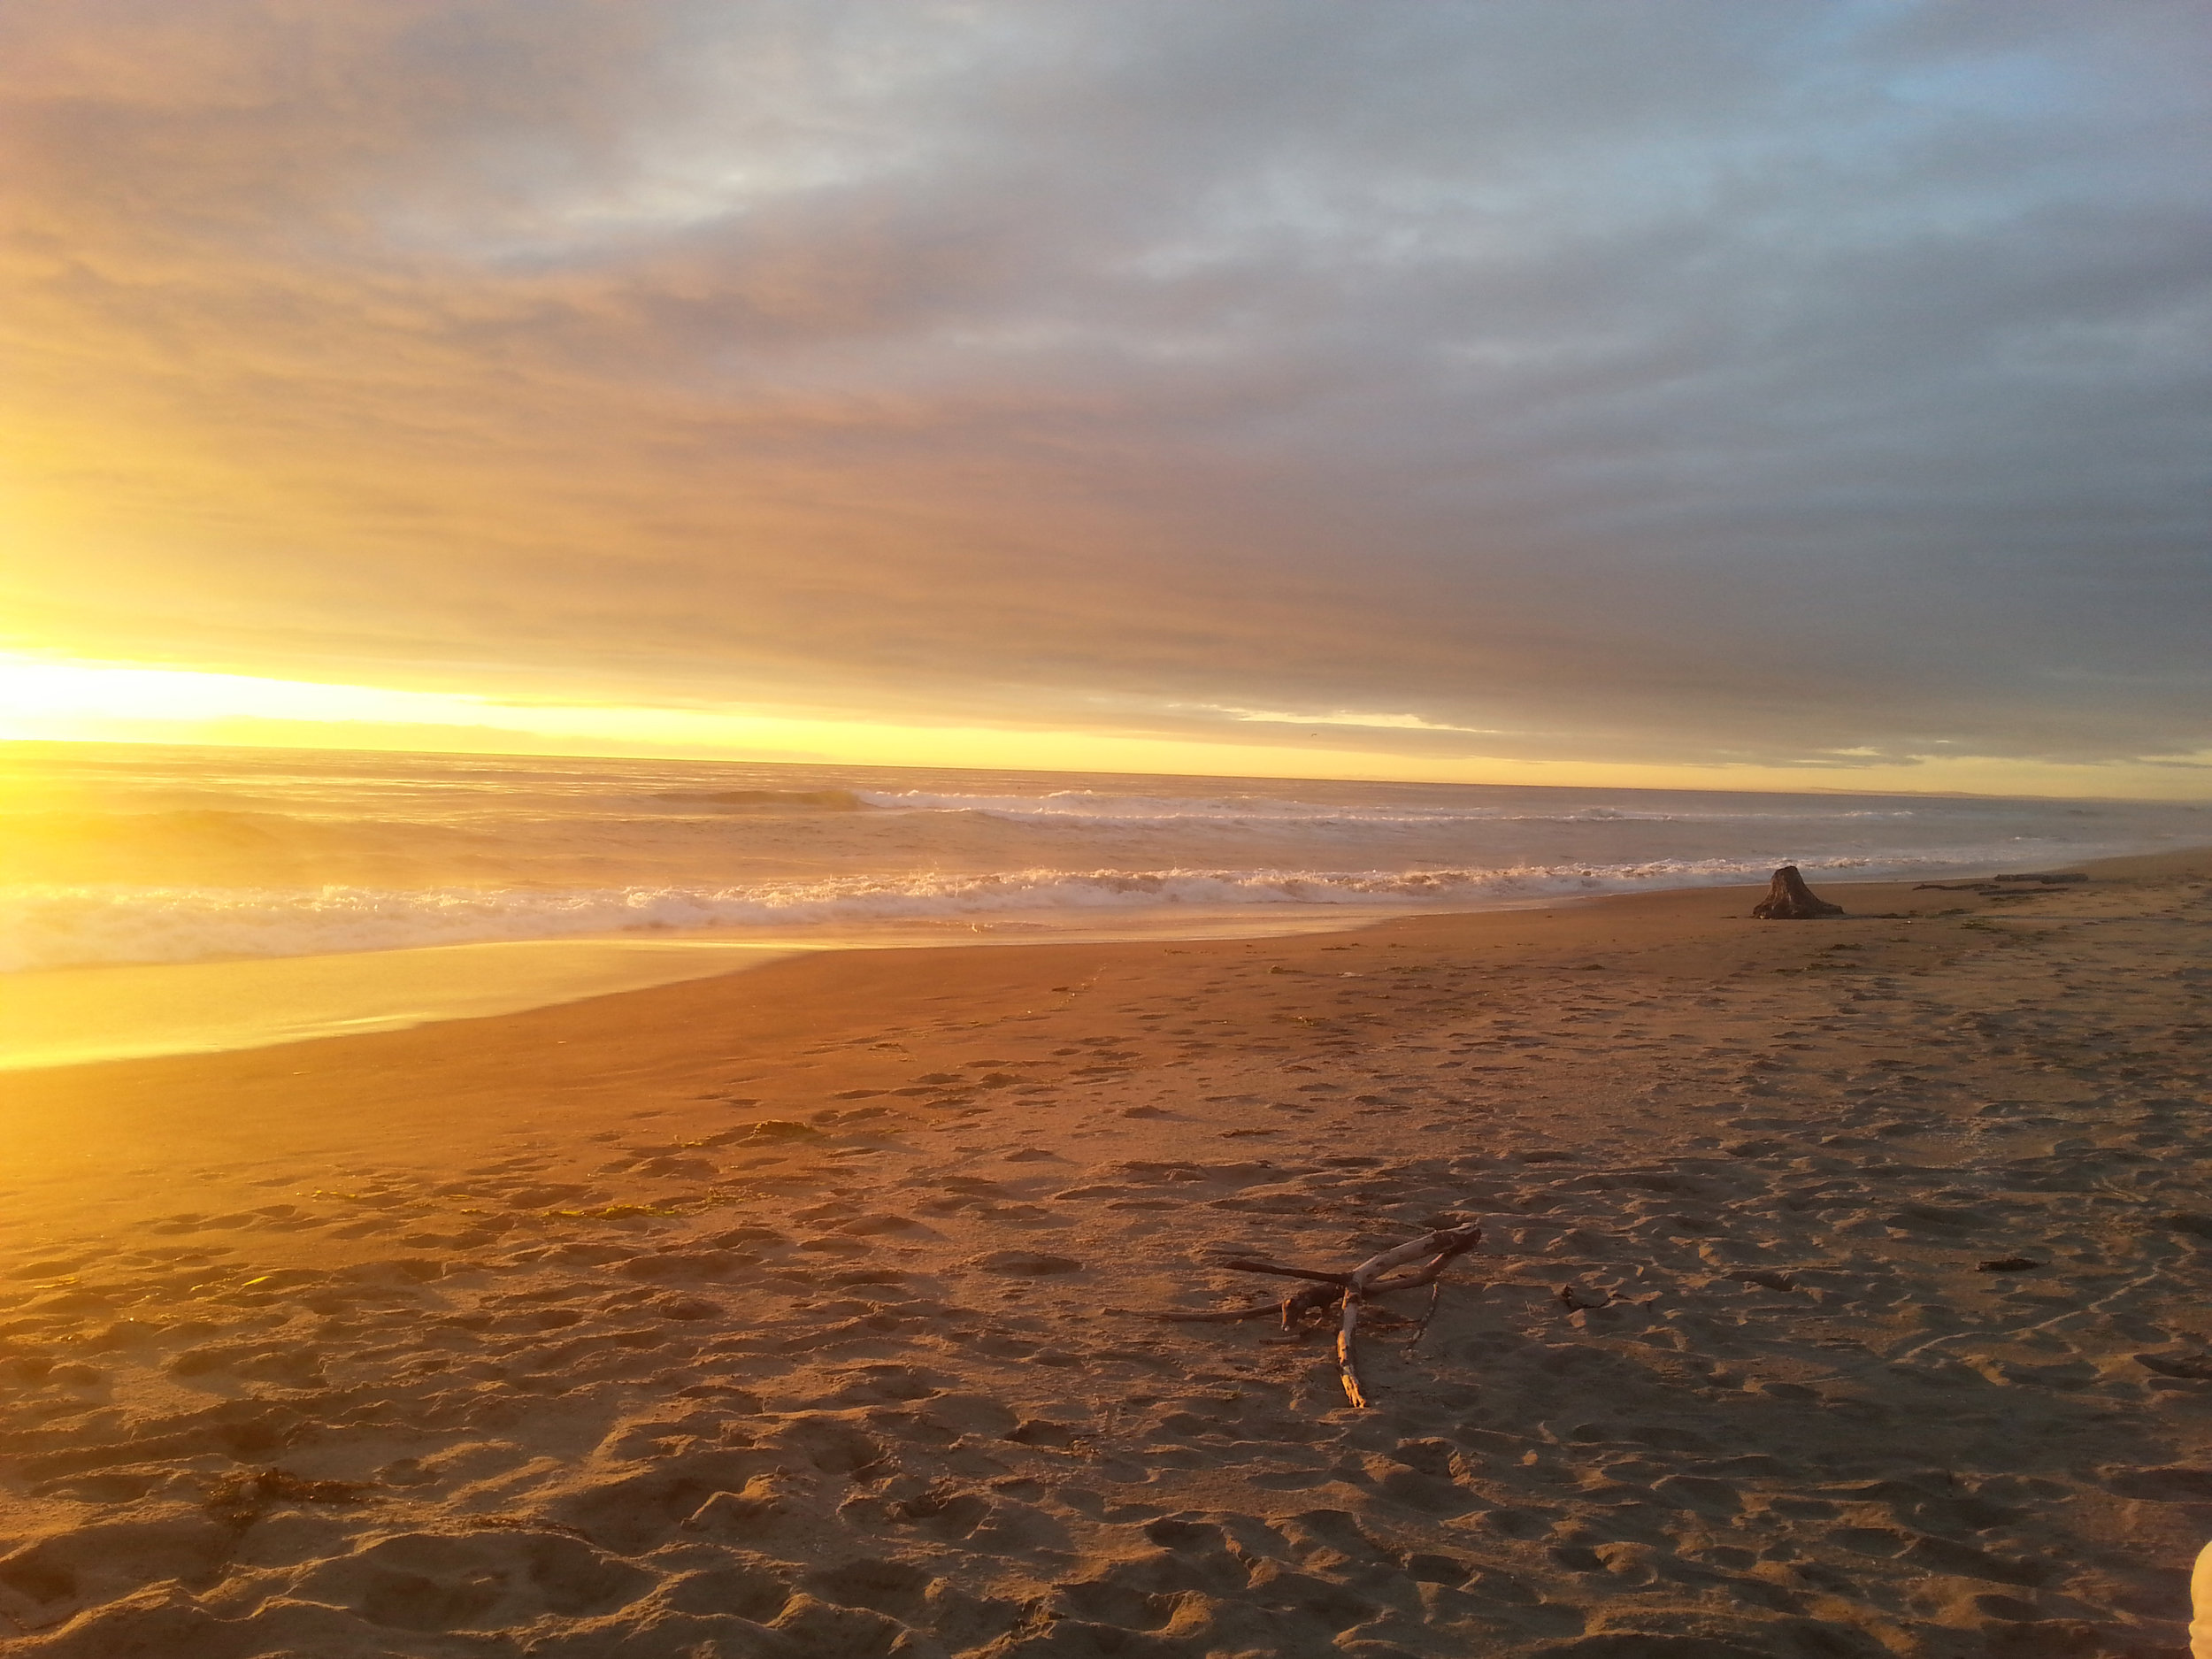 BULLARDS BEACH STATE PARK - Bandon - What to do in Southern Oregon- Camping - Things to do